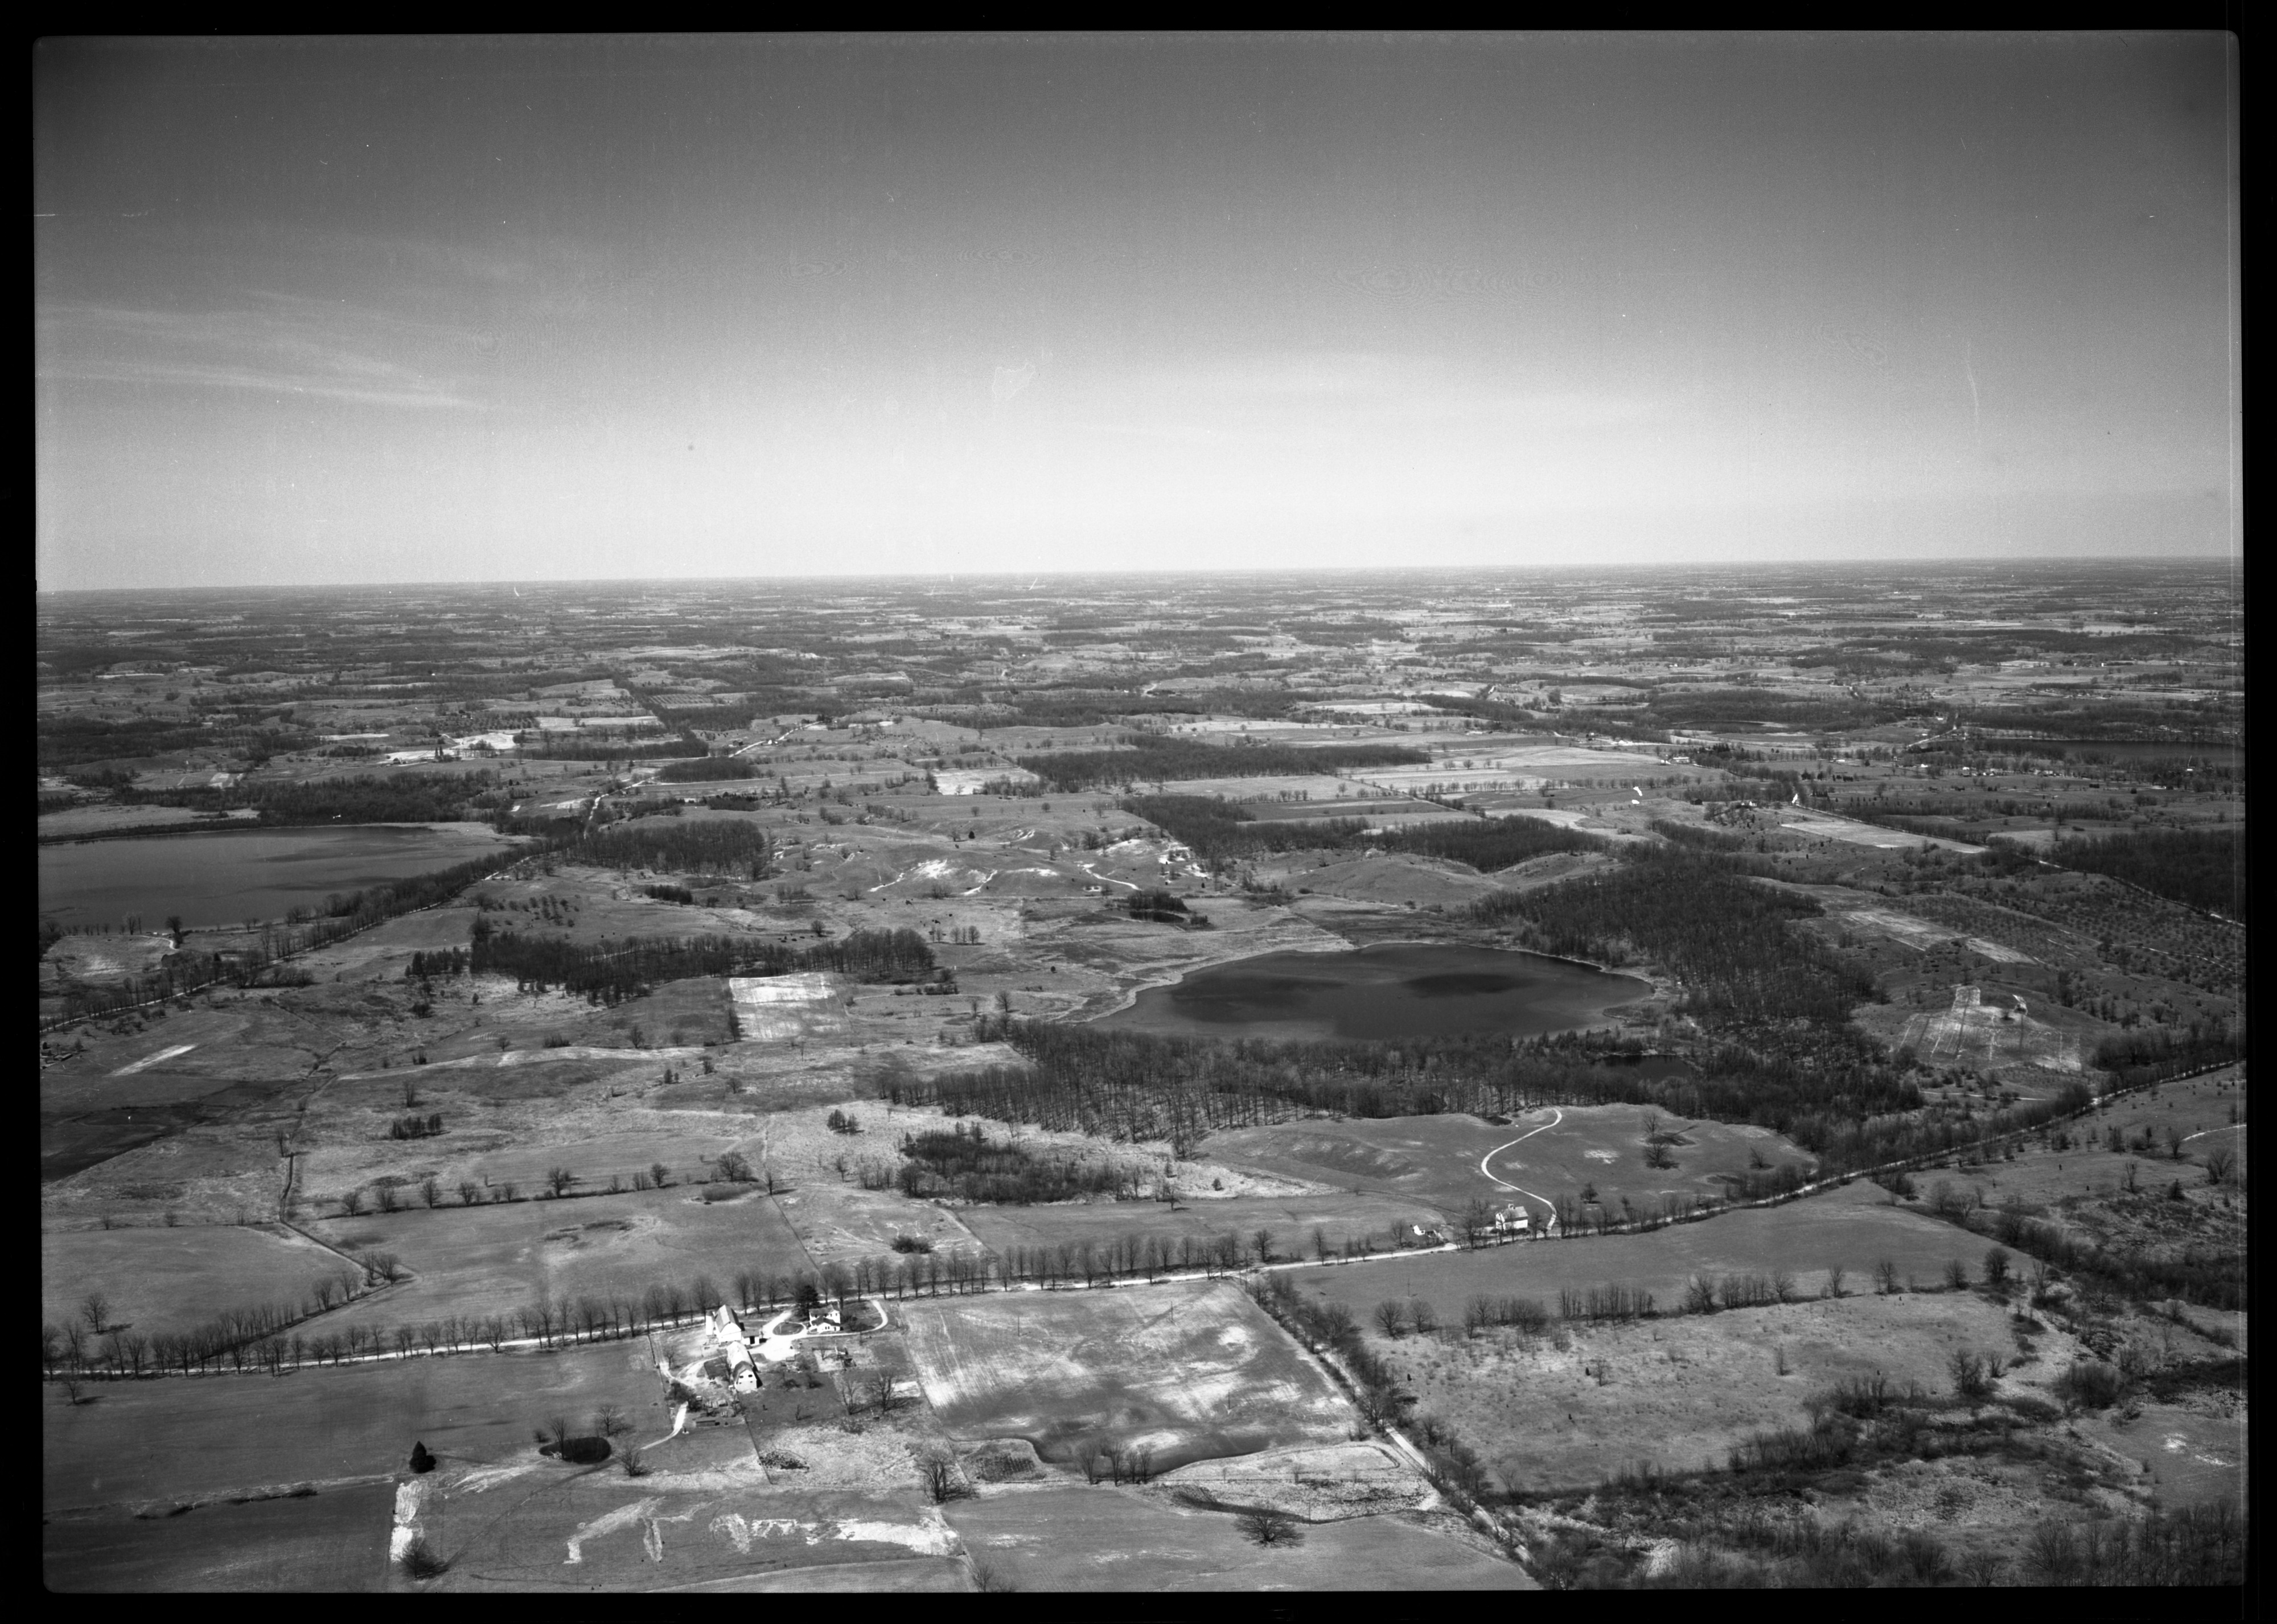 Aerial Photograph of the Southwest Corner of Dexter Township, April 1951 image